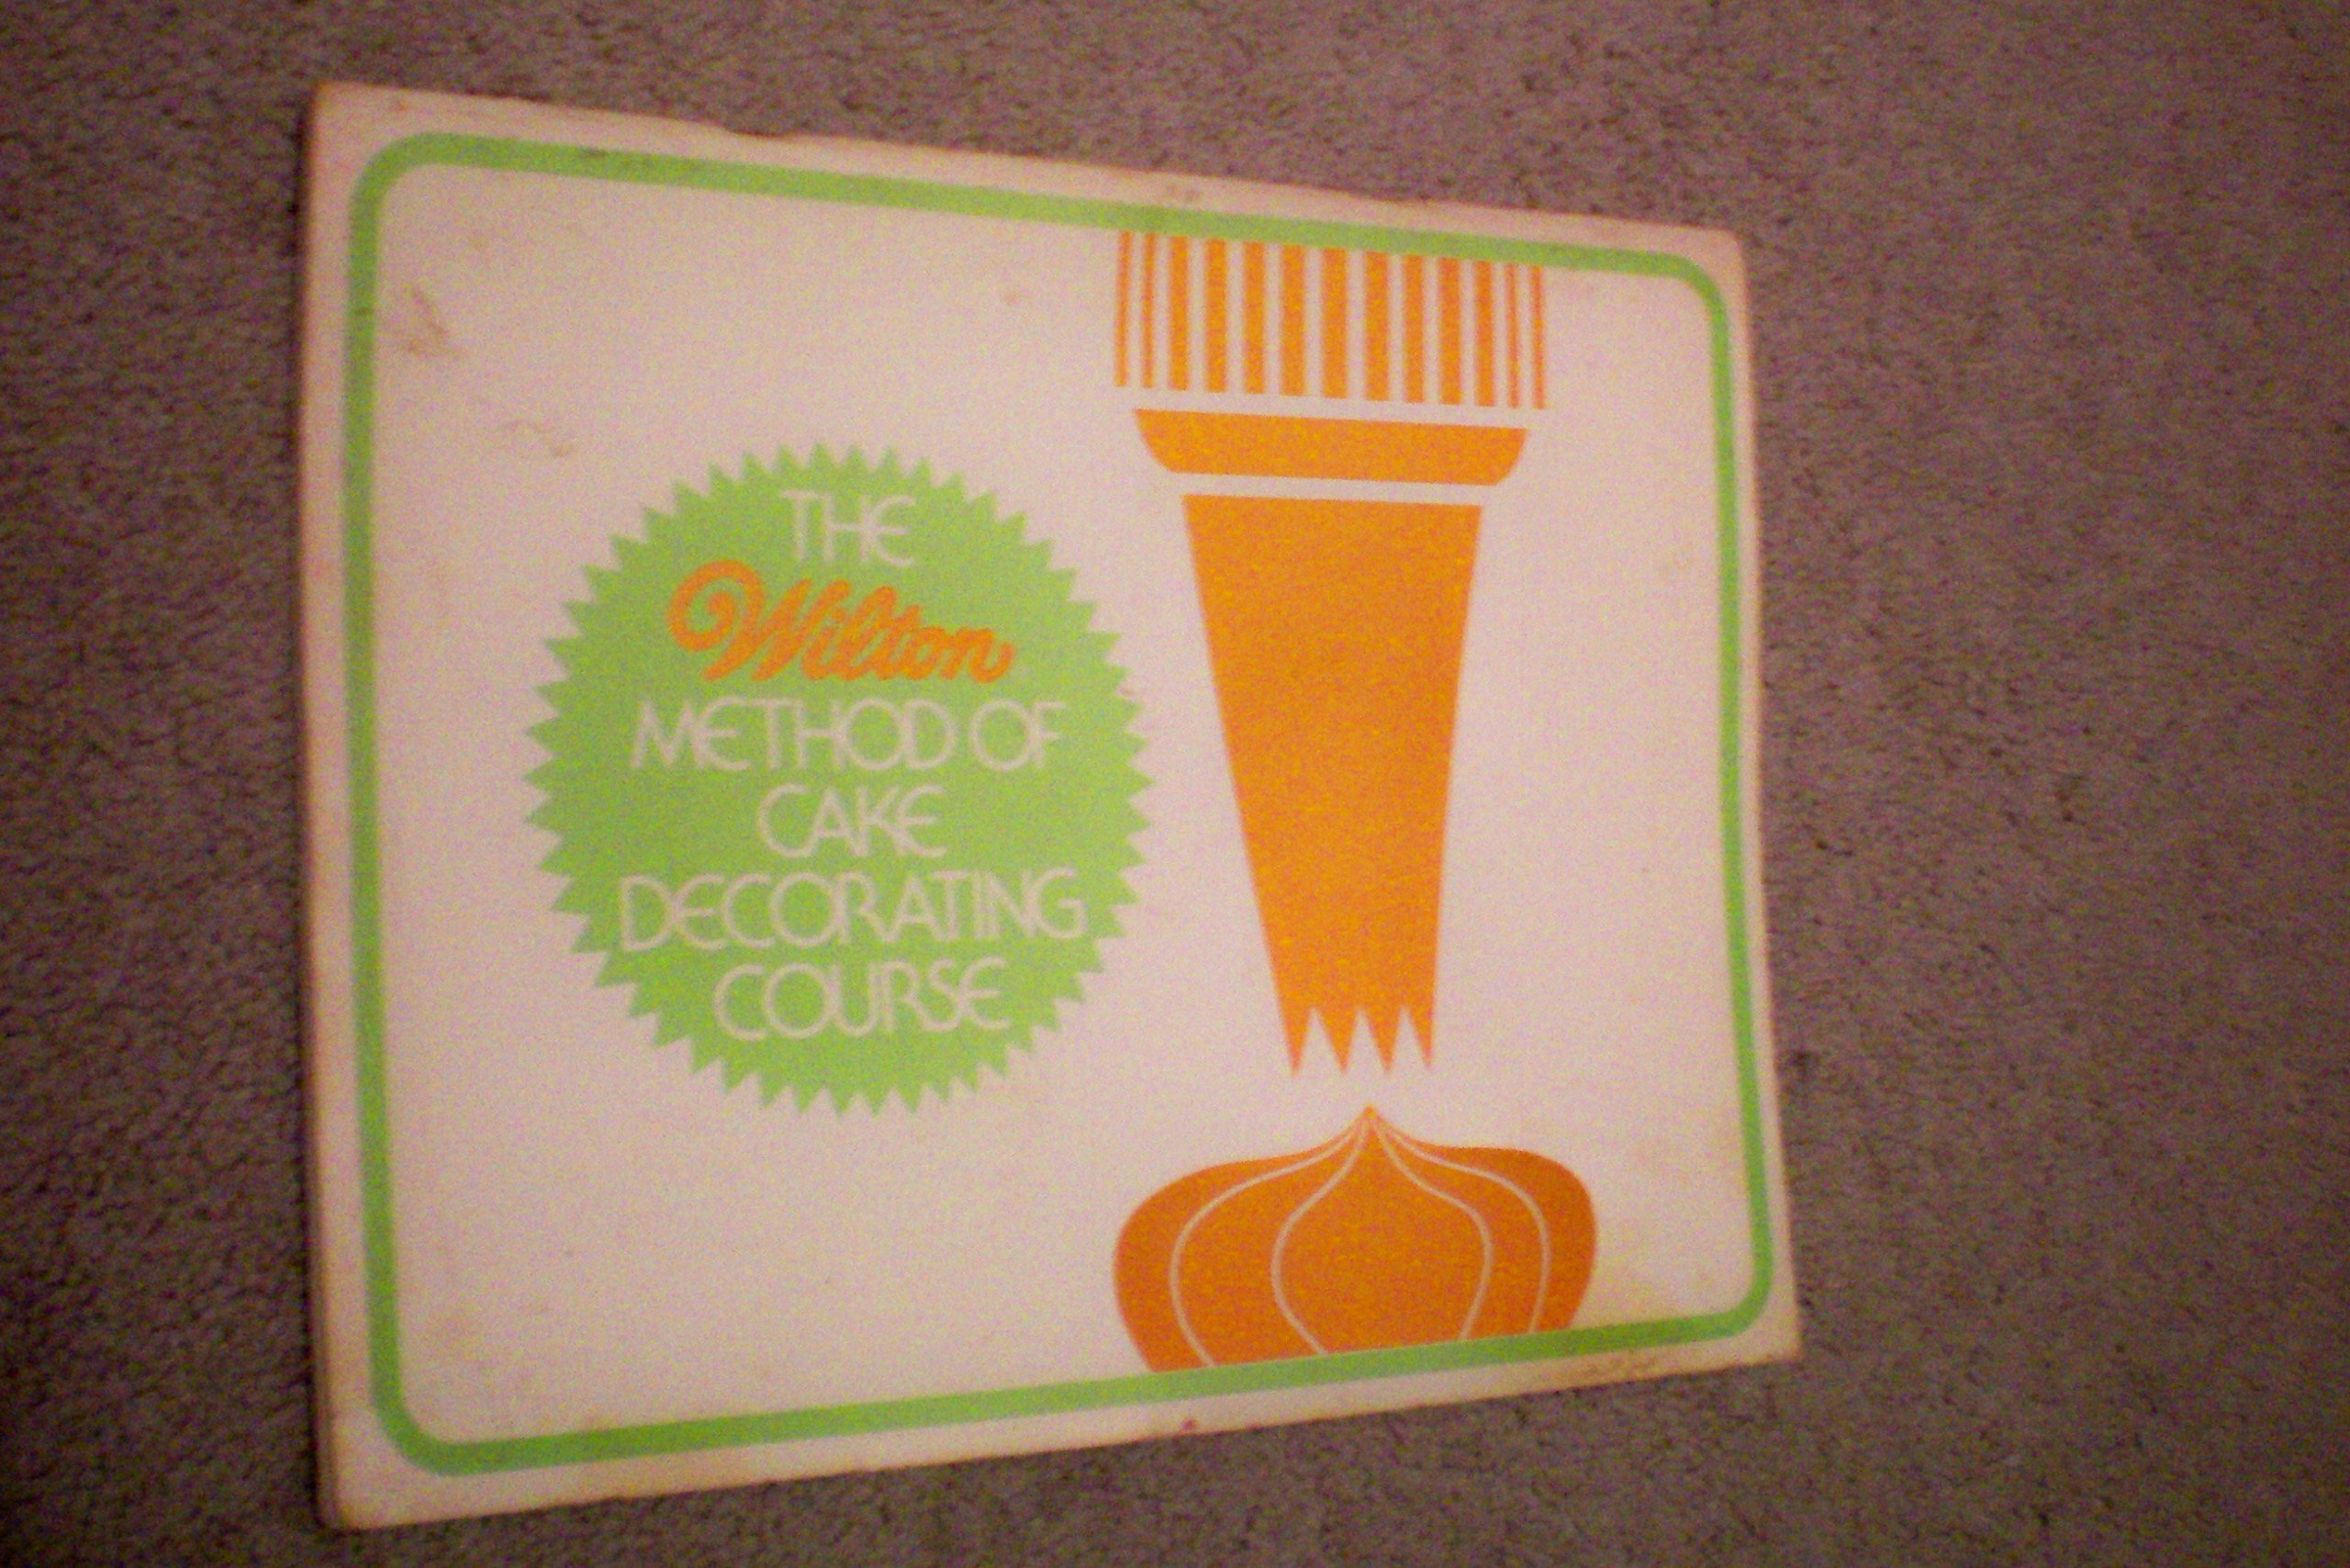 The Wilton Method of Cake Decorating, Course 1: Discover Cake Decorating by Wilton Enterprises